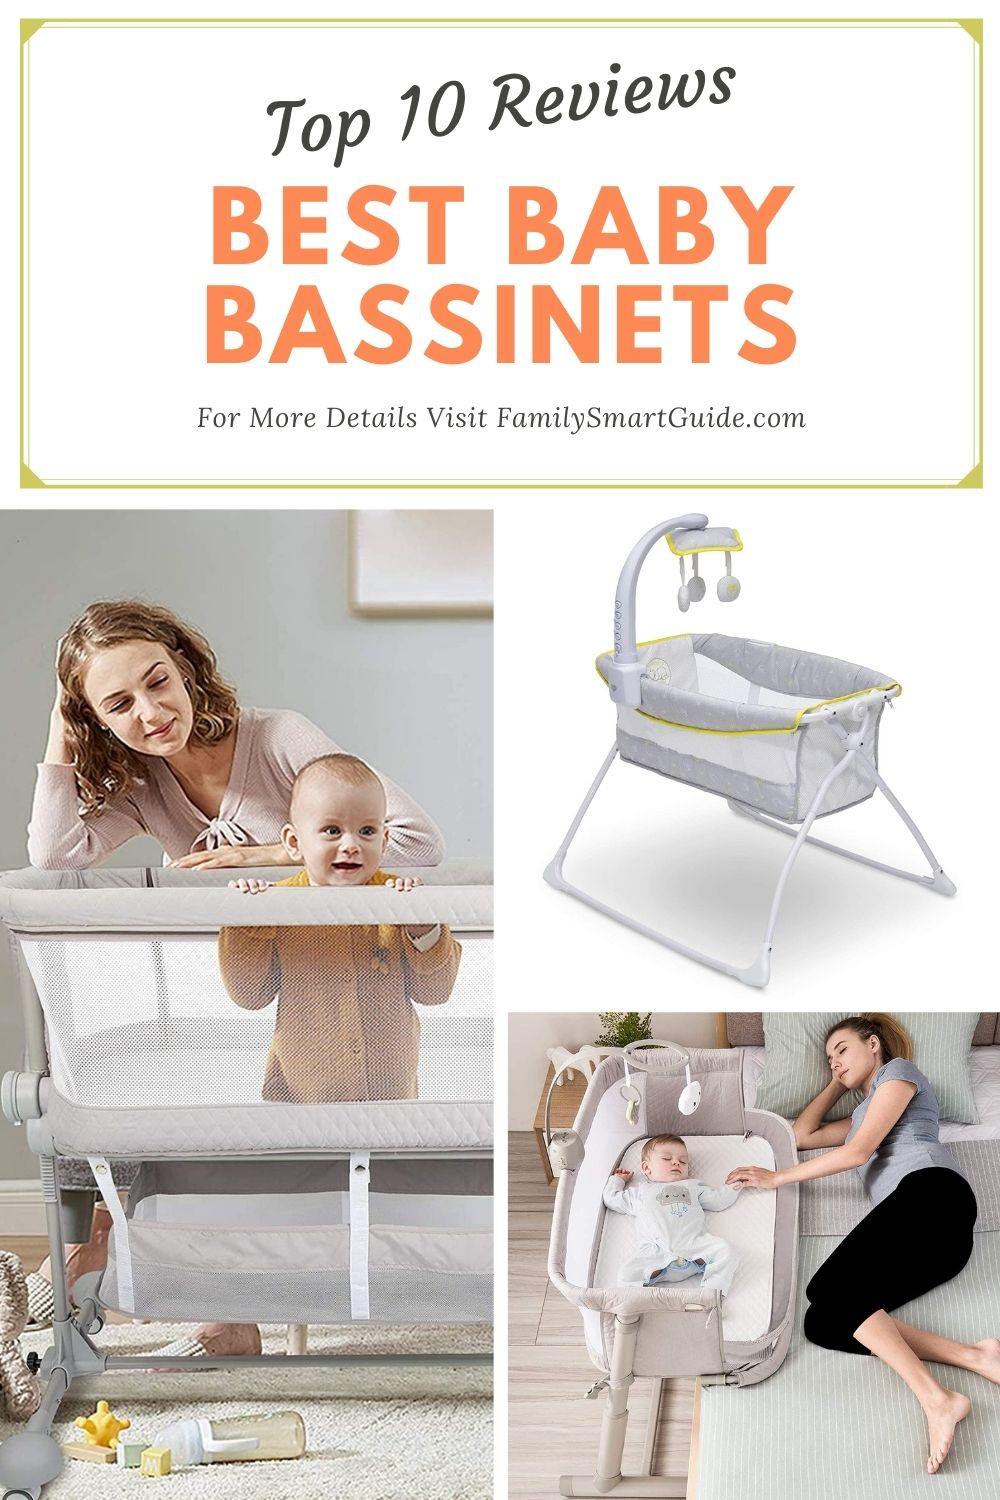 Top 10 Best Baby Bassinets Reviews